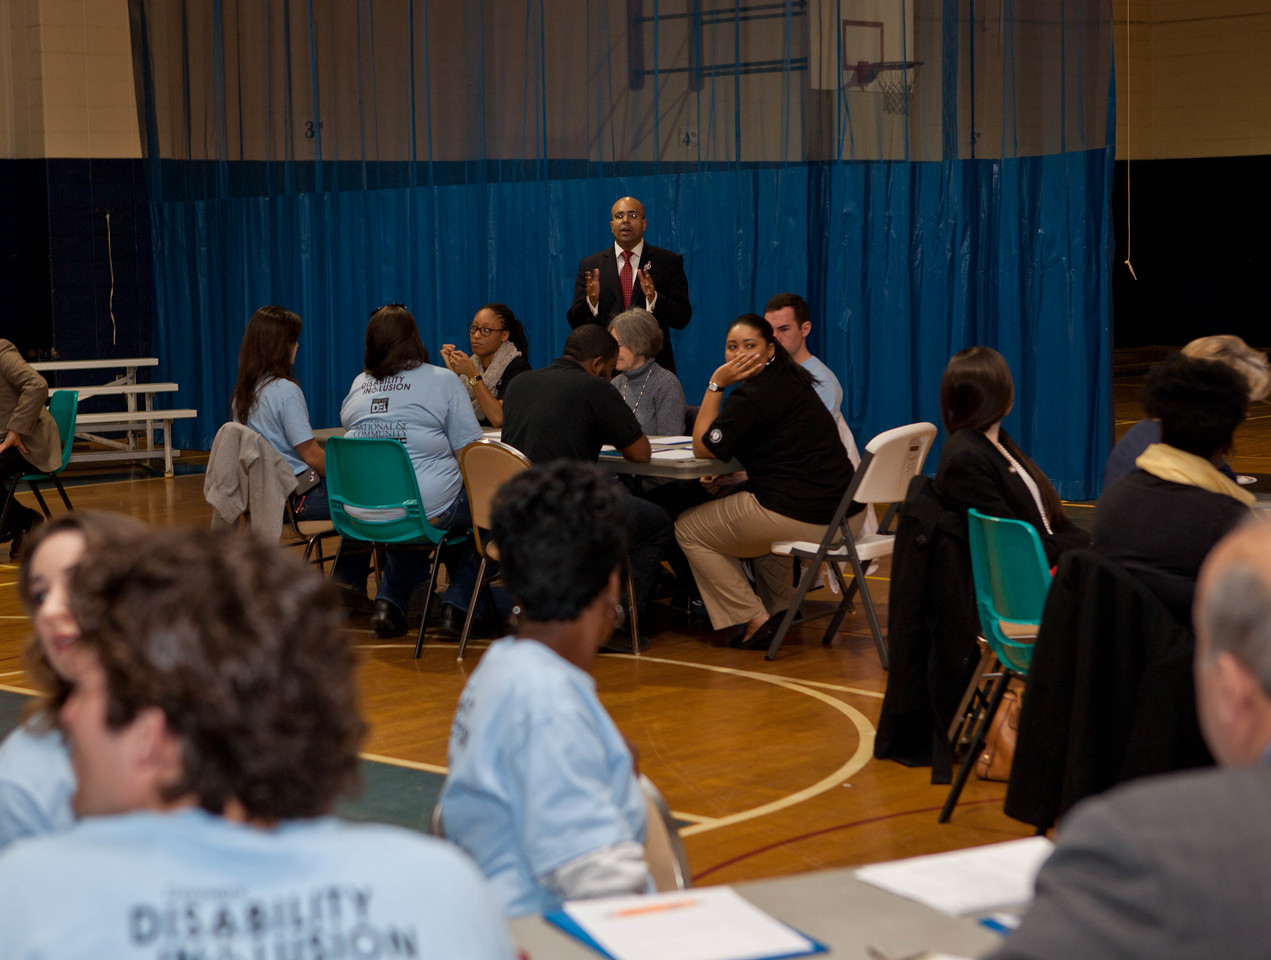 Koby Langley, Senior Advisor for Wounded Warriors, Veterans and Military Families at CNCS leads breakout sessions at the Boy and Girls Club in Wilmington, DE. Corporation for National and Community Service Photo.